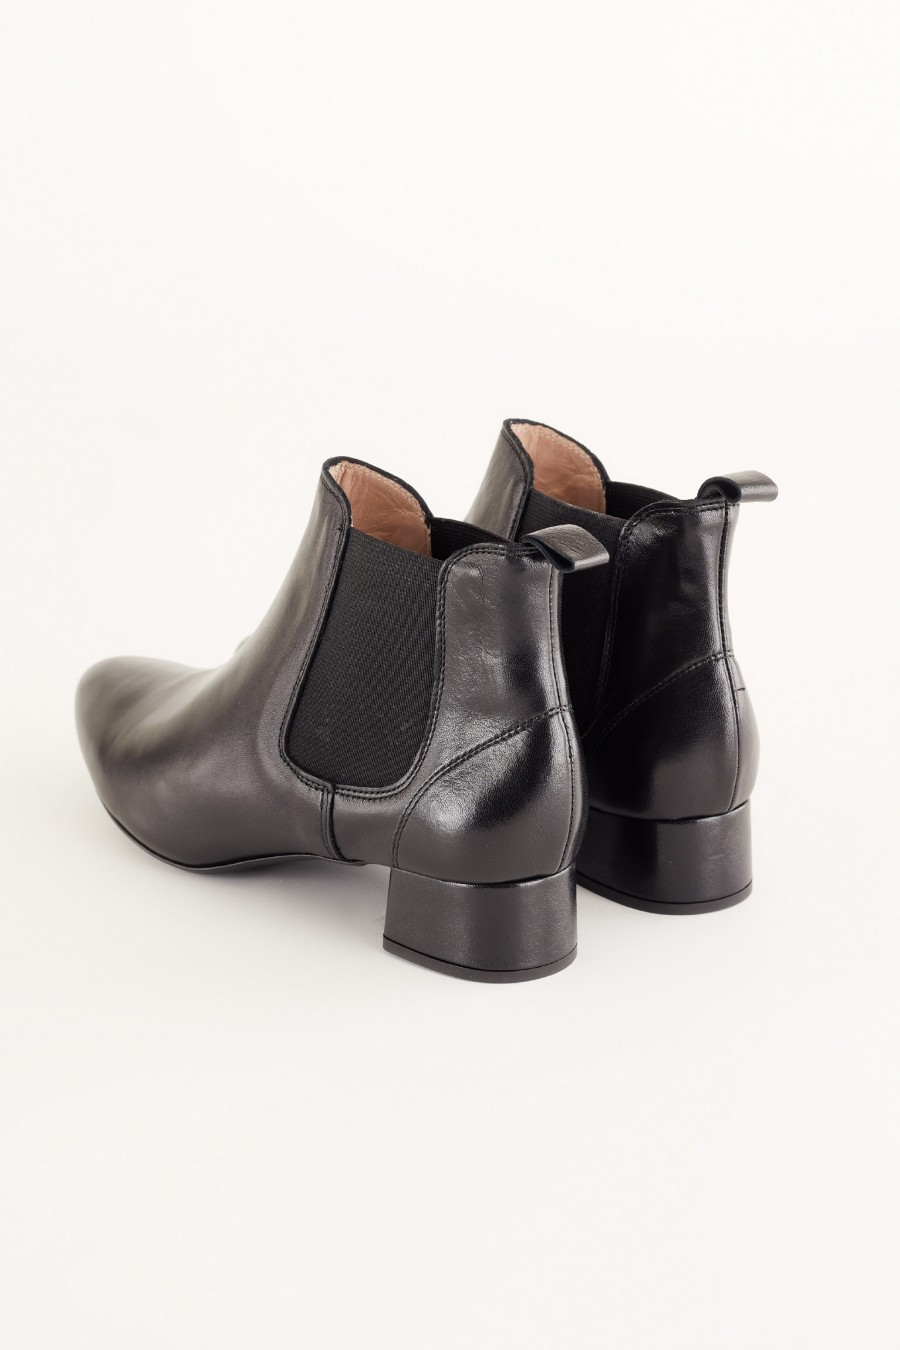 easy-to-style and practical ankle boots